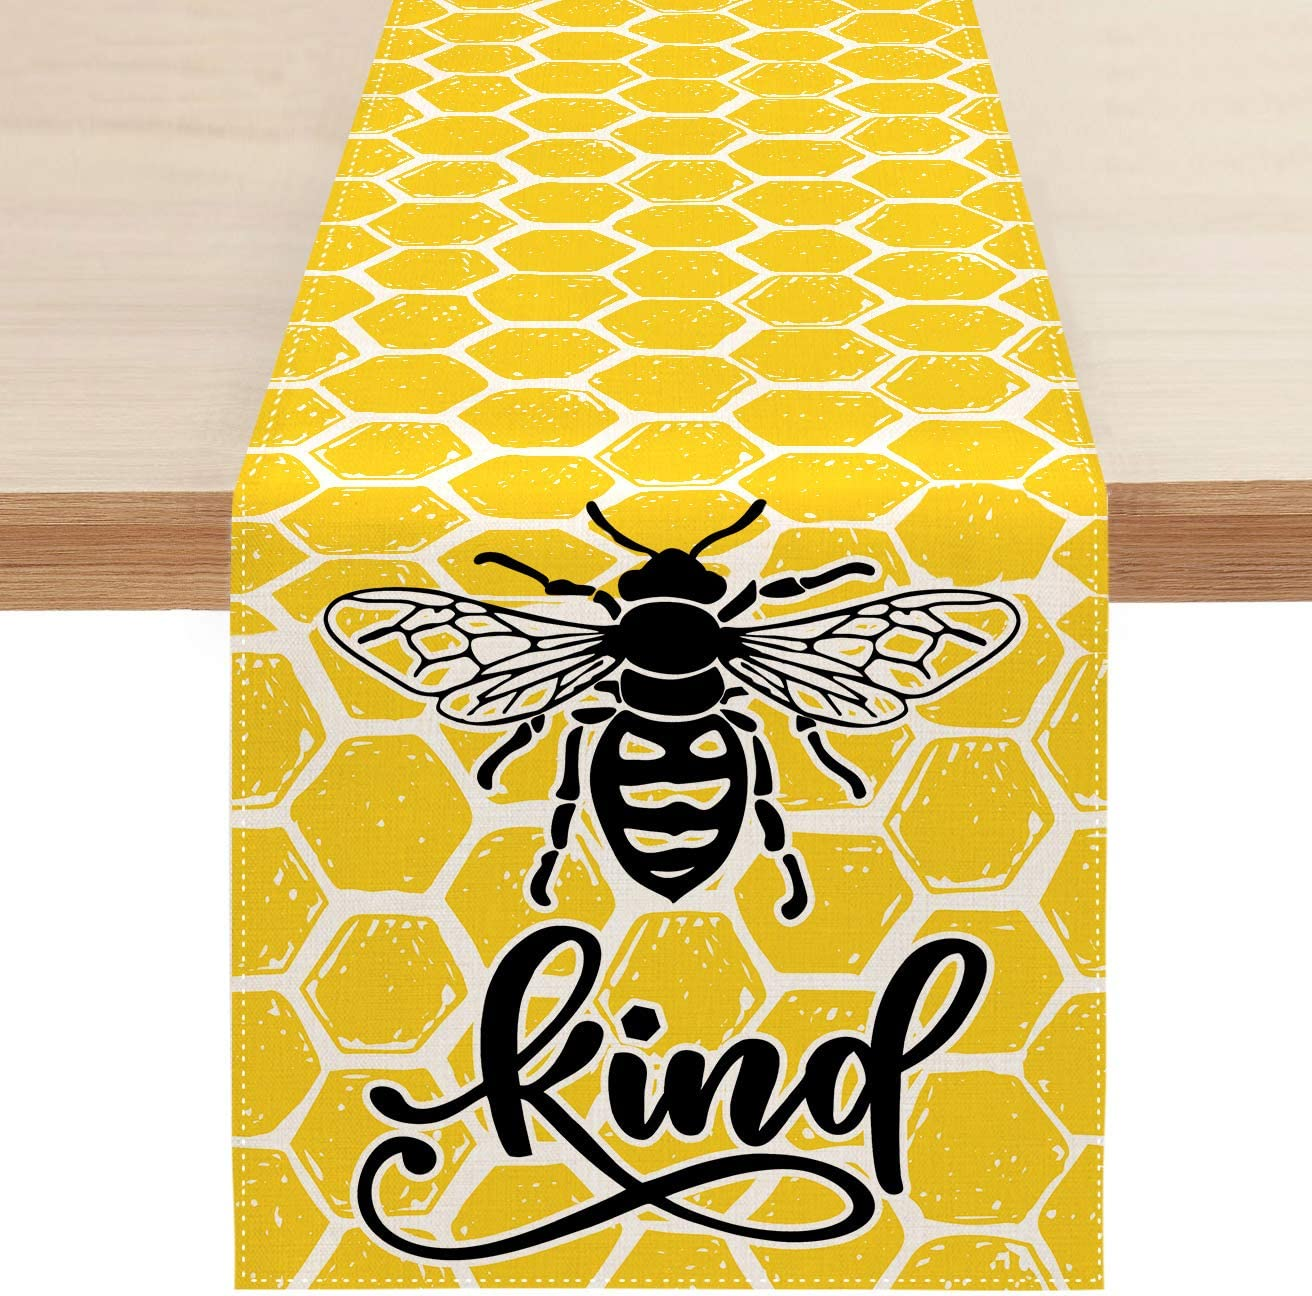 Sambosk Spring Bee Kind Table Runner, Yellow Table Runners for Kitchen Dining Coffee or Indoor and Outdoor Home Parties Decor 13 x 72 Inches